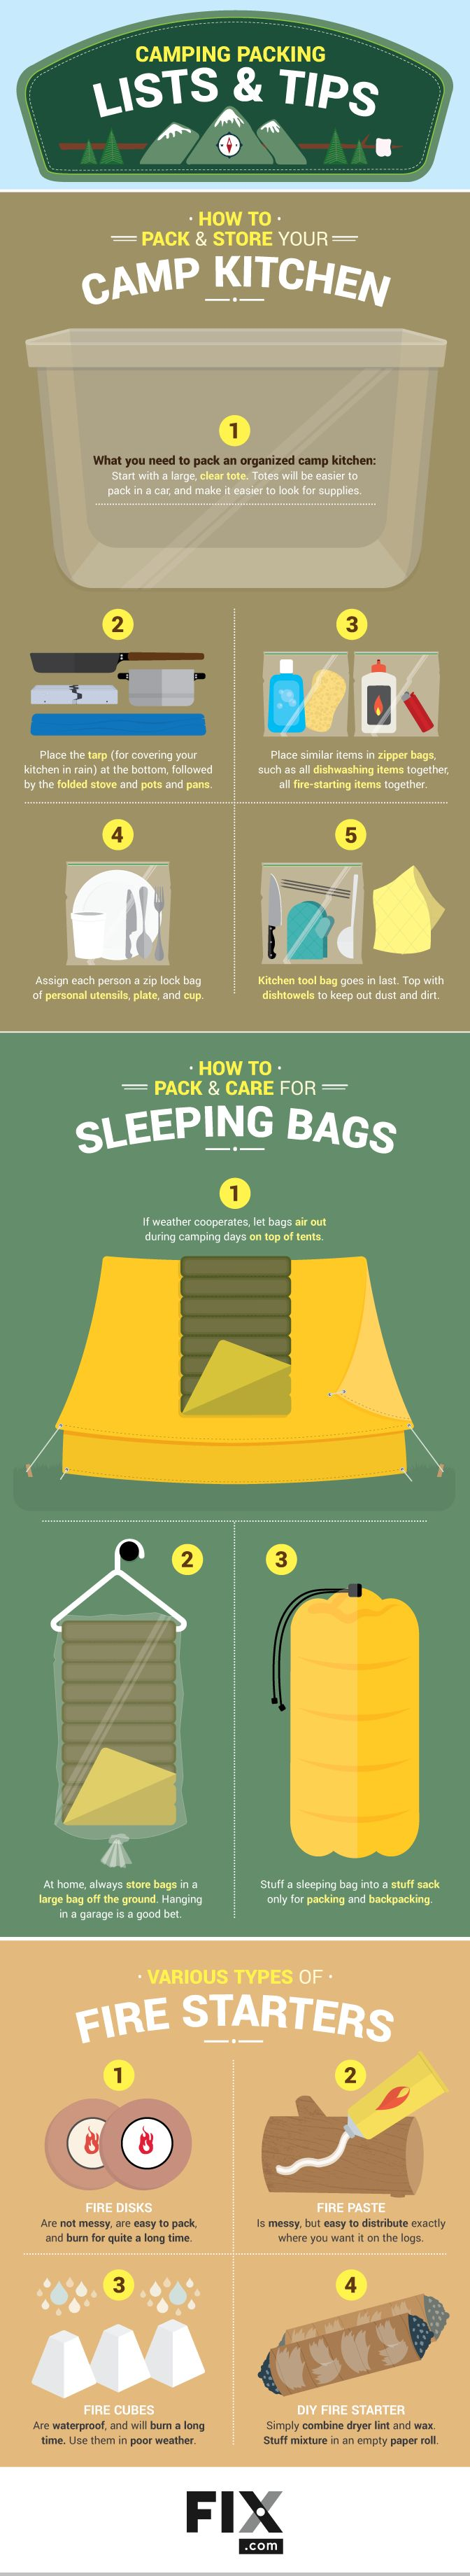 Camping packing lists for all types of family camping trips, from car camping in campgrounds to backcountry camping with the family.